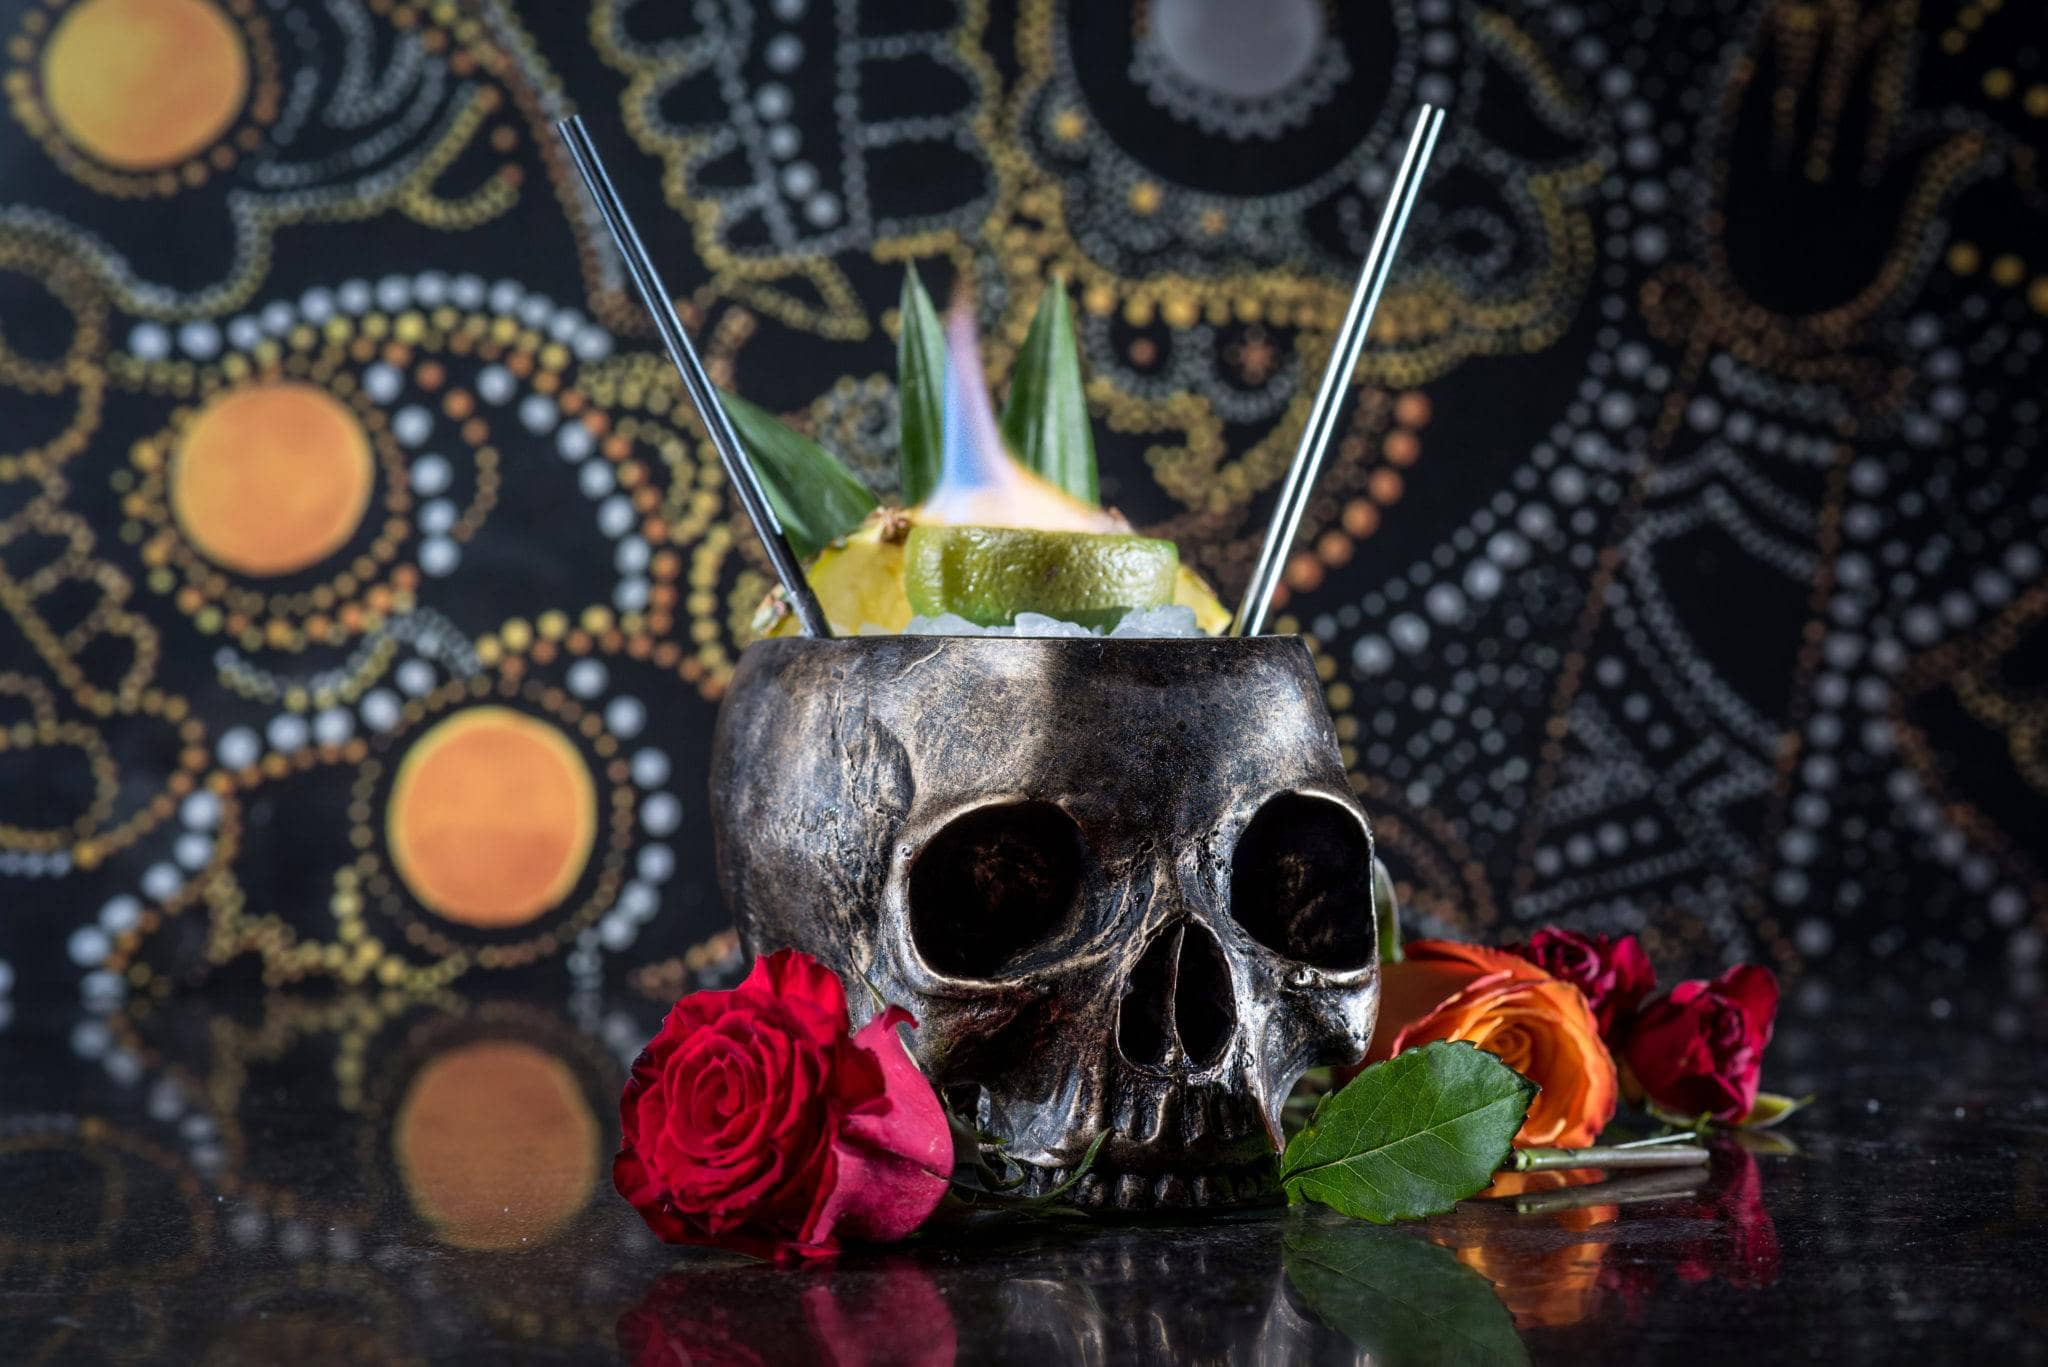 Halloween cocktail recipes: The One-Eyed Willy from Borracha in Hendersonville, Nevada